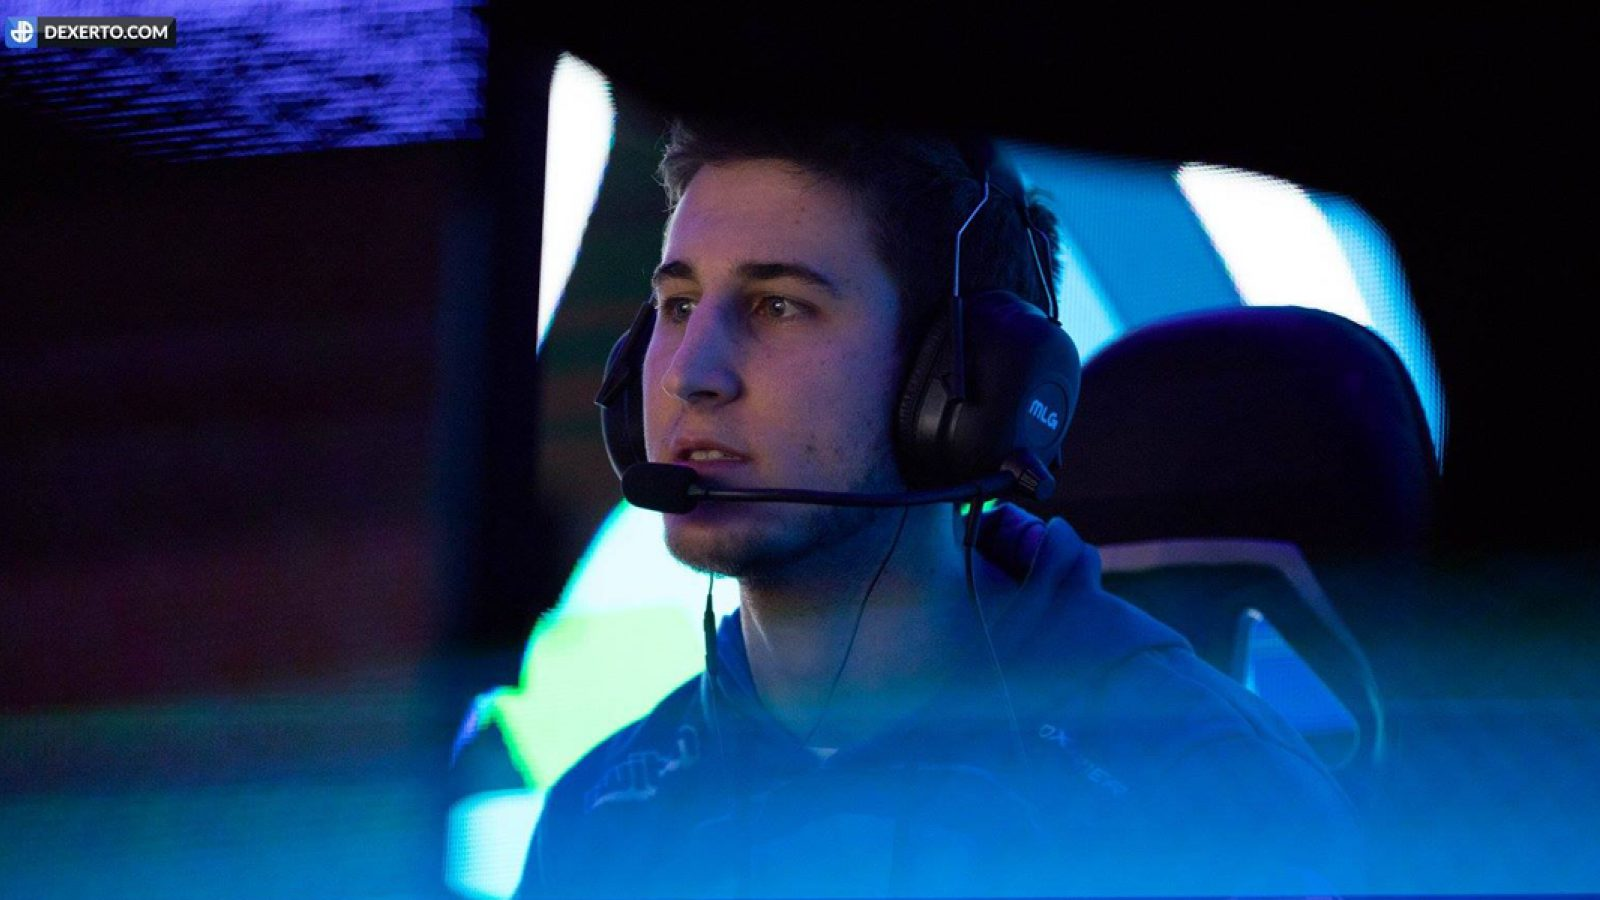 JKap competing in Call of Duty.